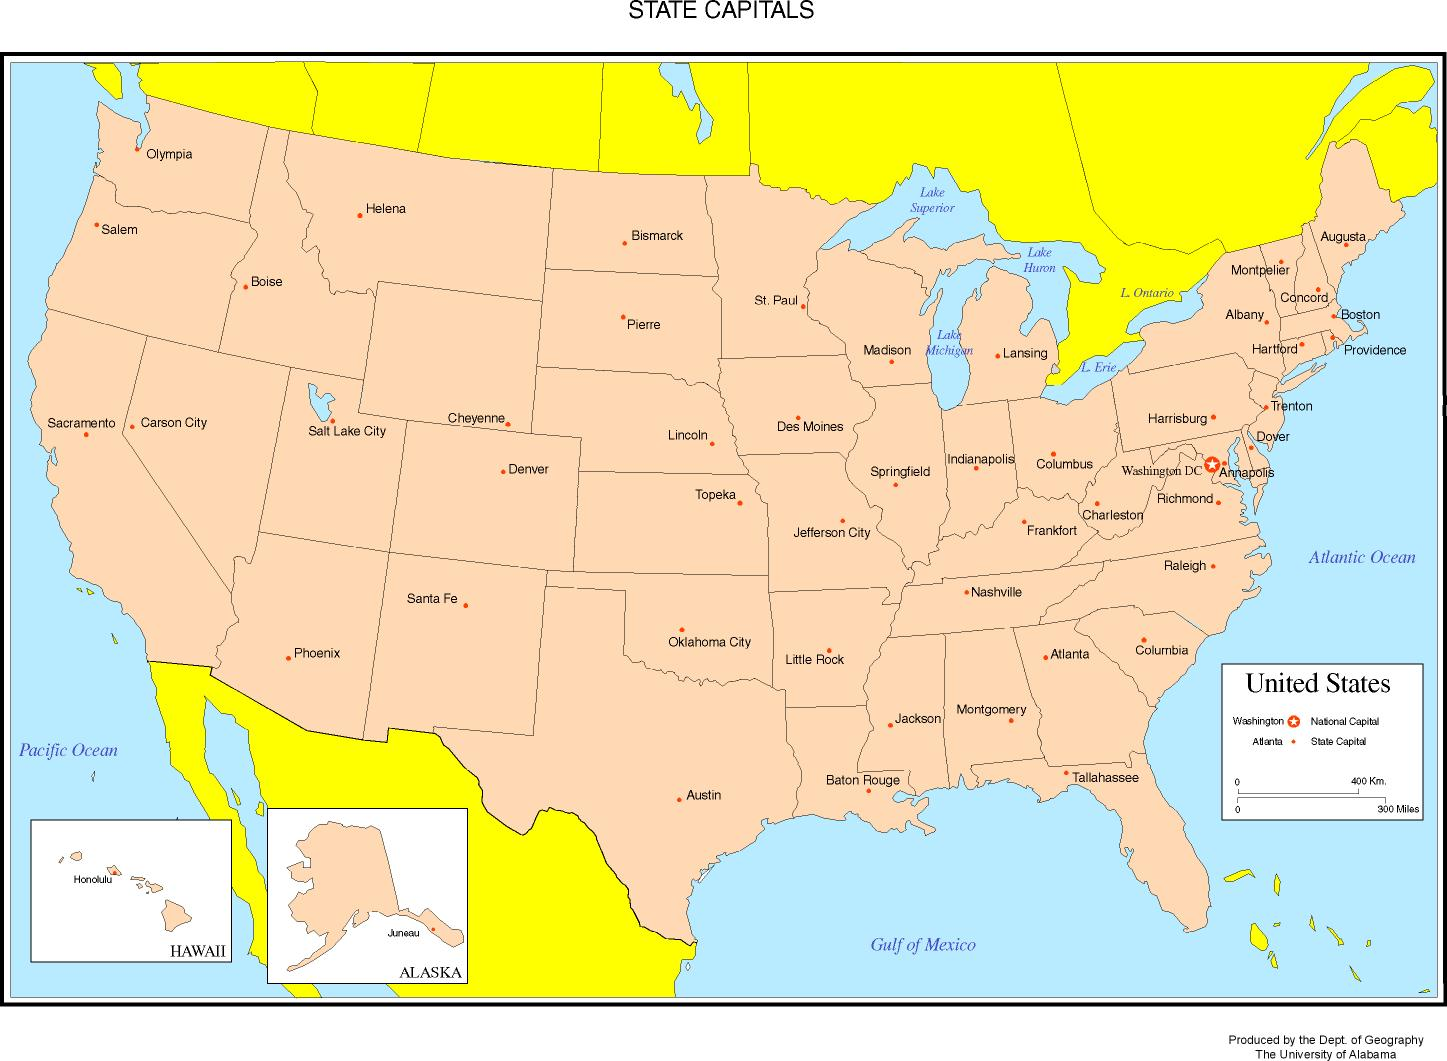 Maps Of The United States - States map of united states